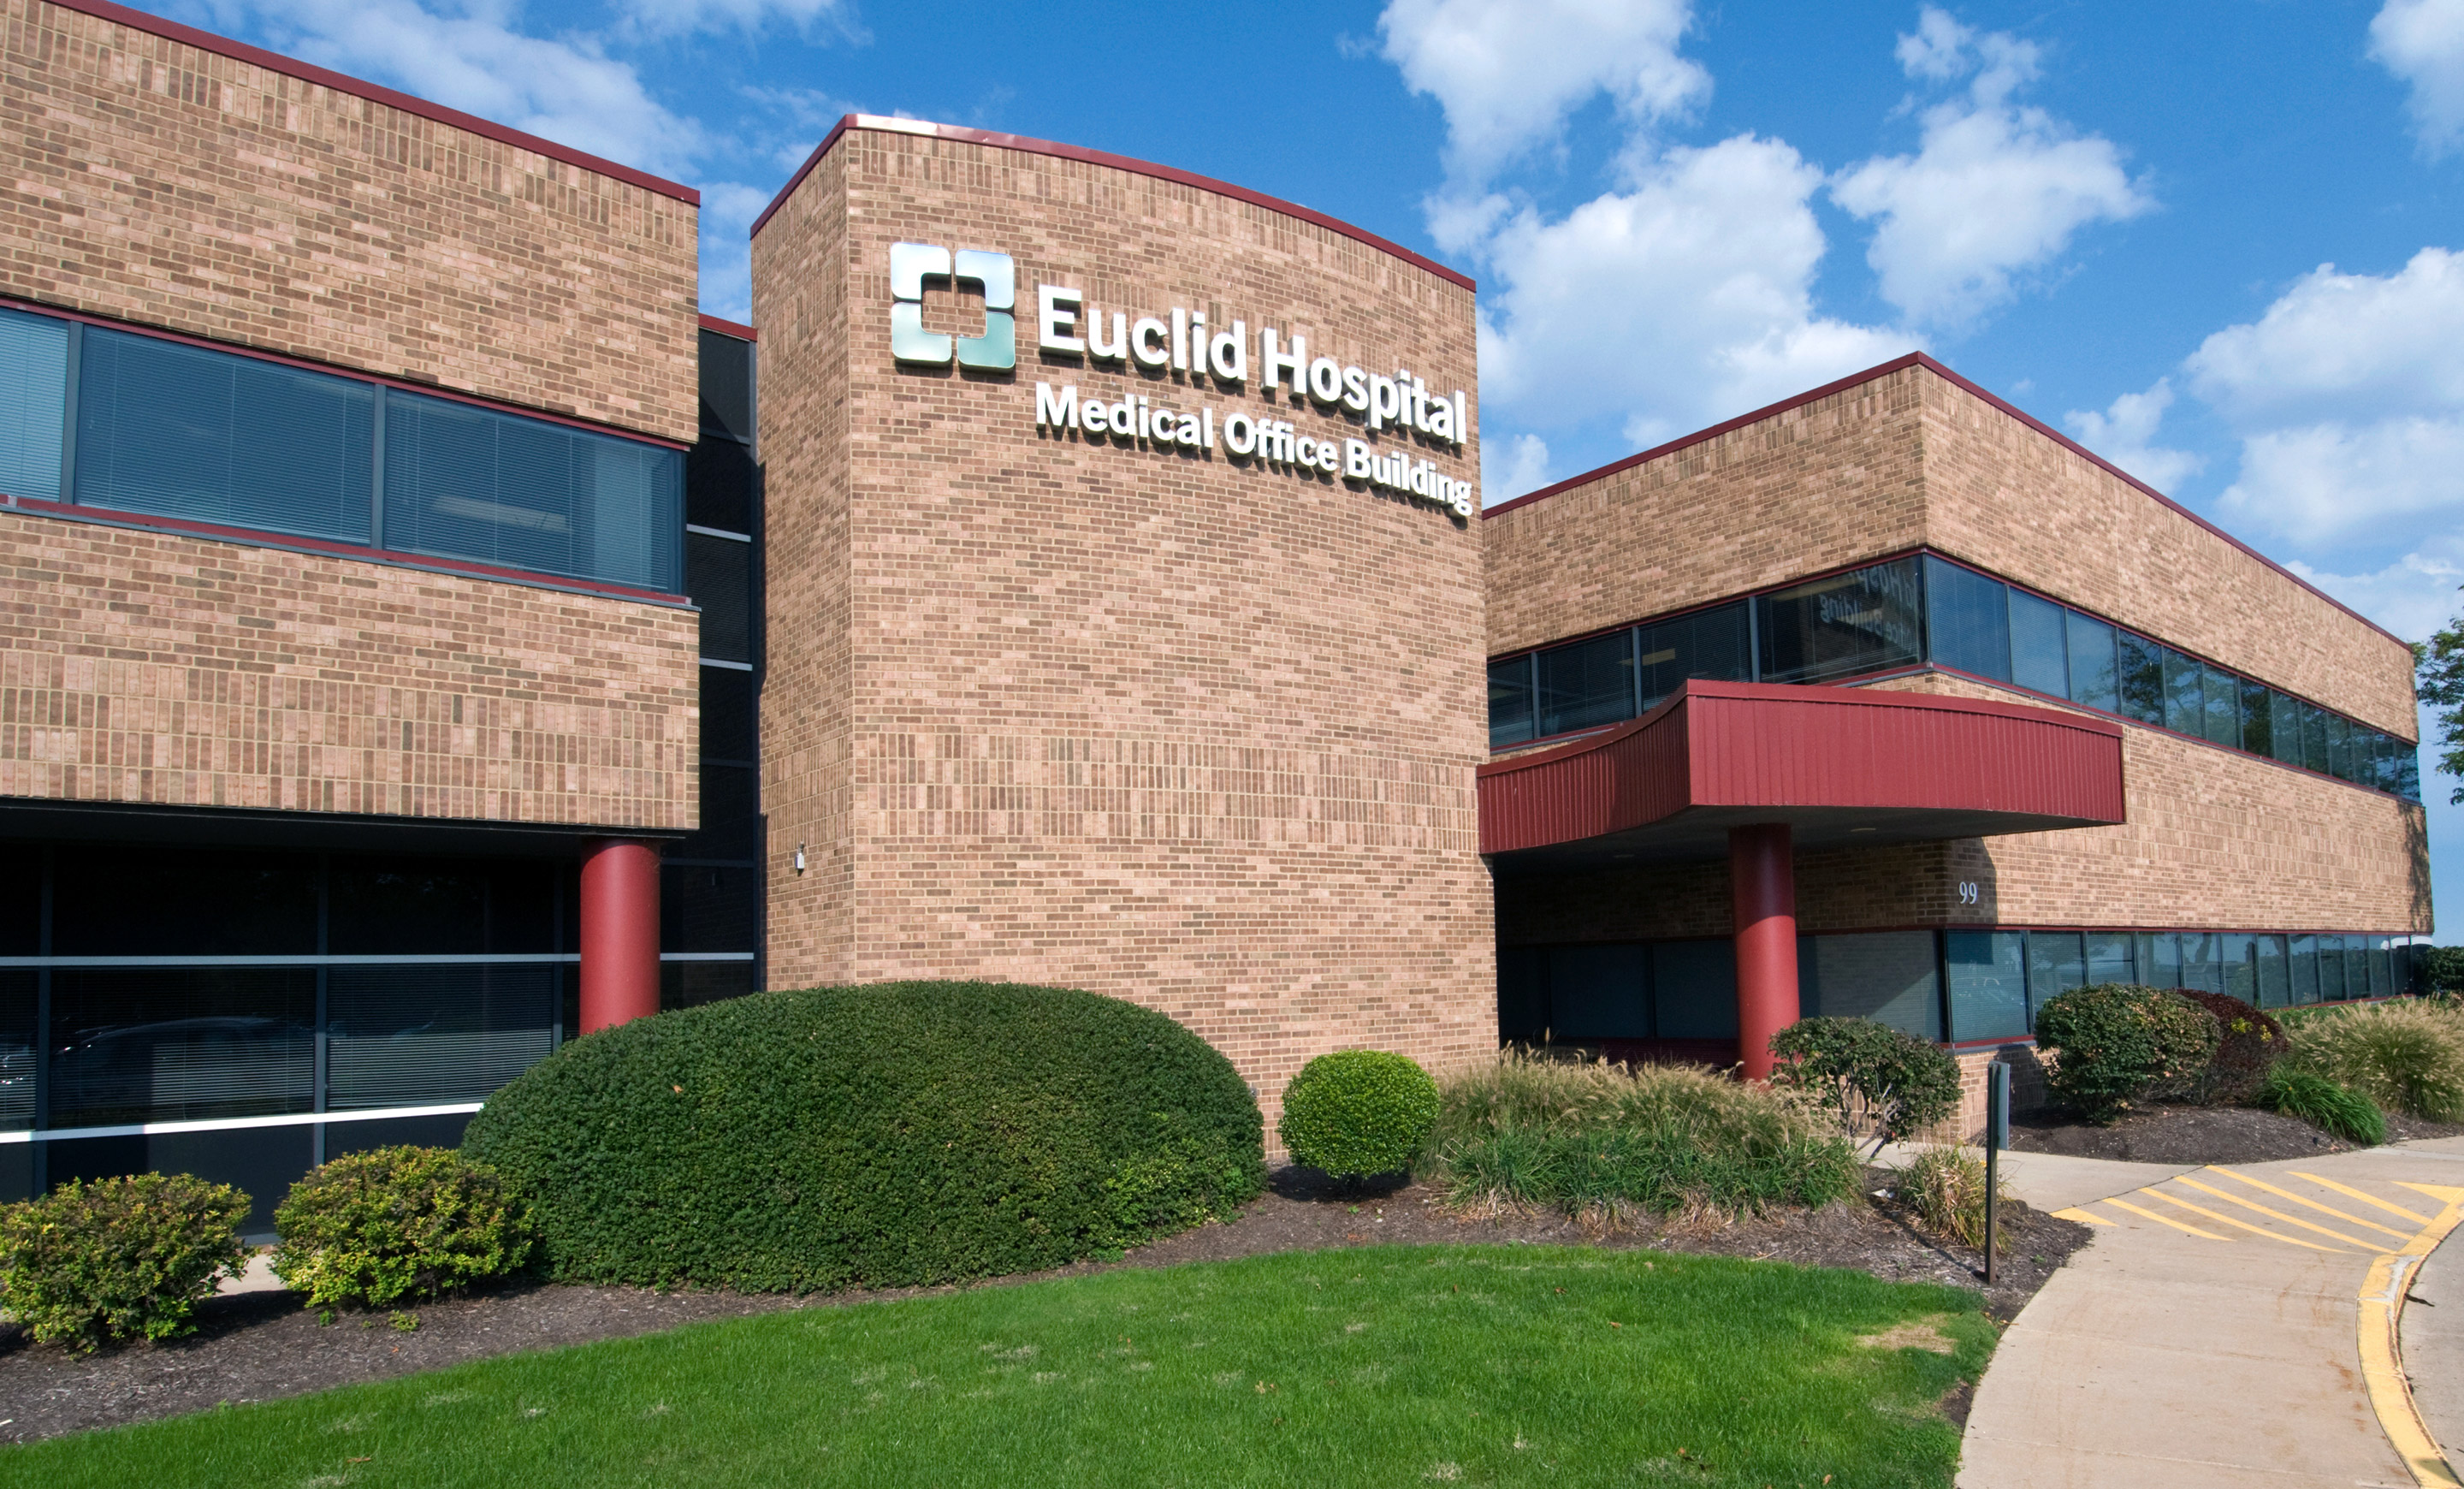 Euclid Medical Office Building